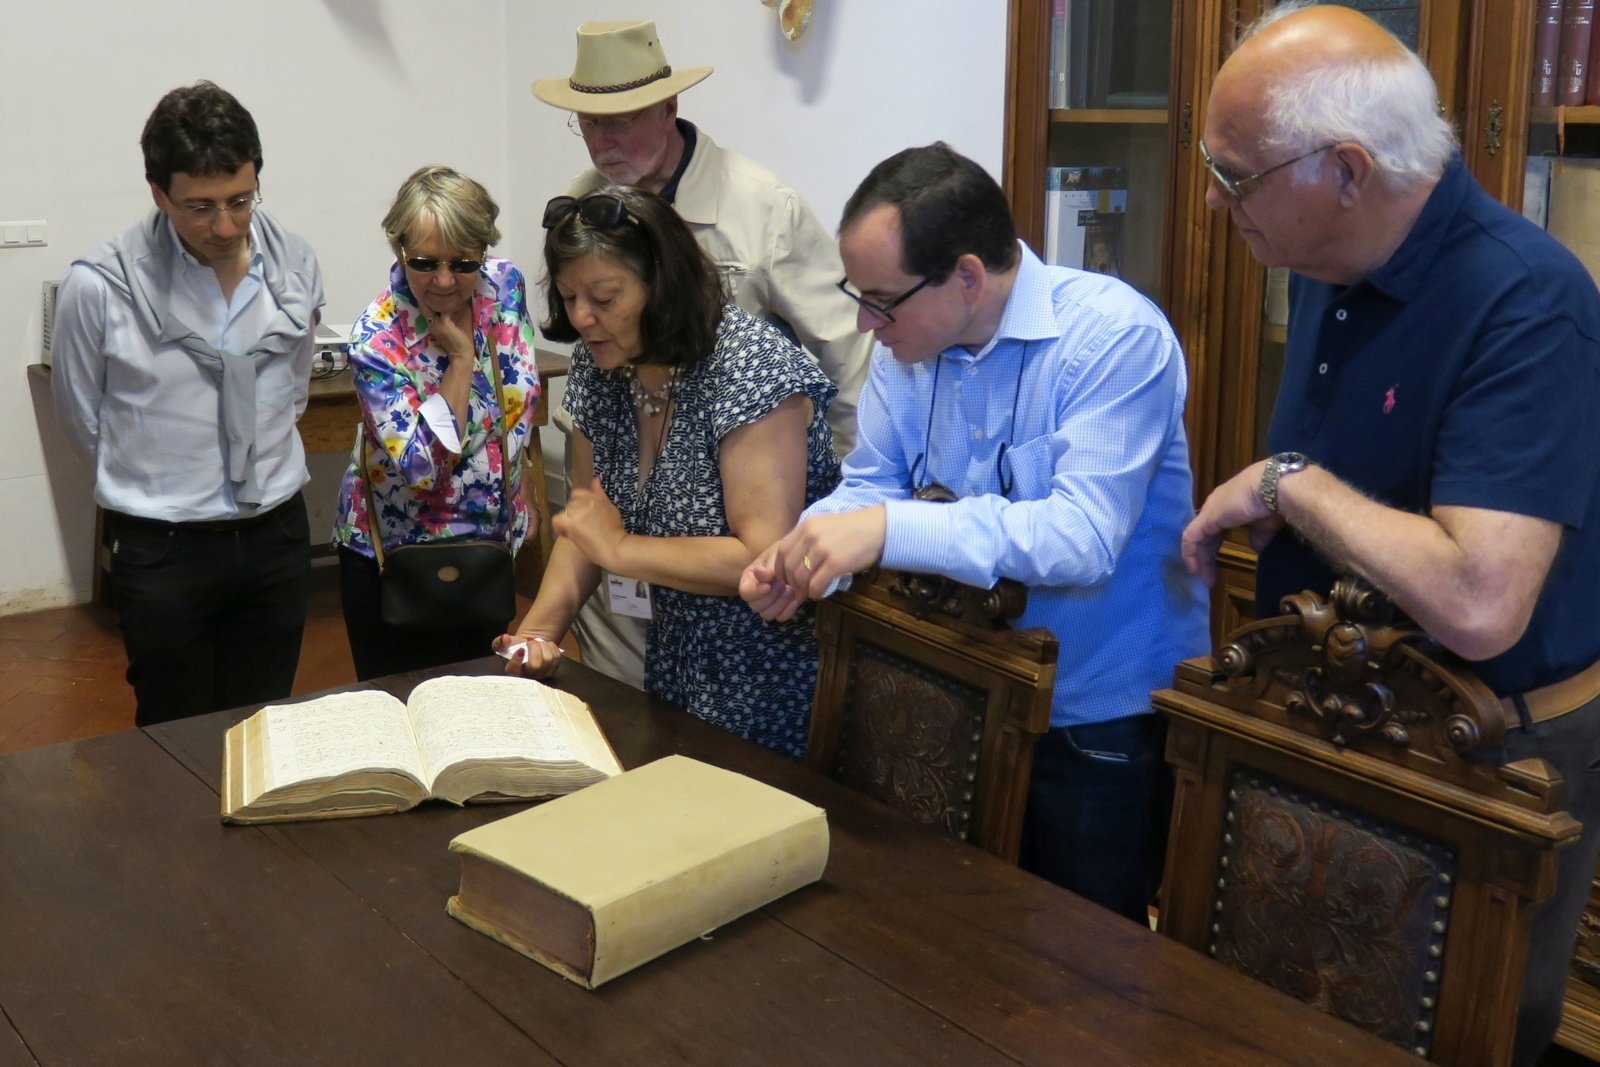 ...as well as a visit to Mafra, where we could see the inventories of the library, which were kindly explained by Dr. Maria Teresa Amaral